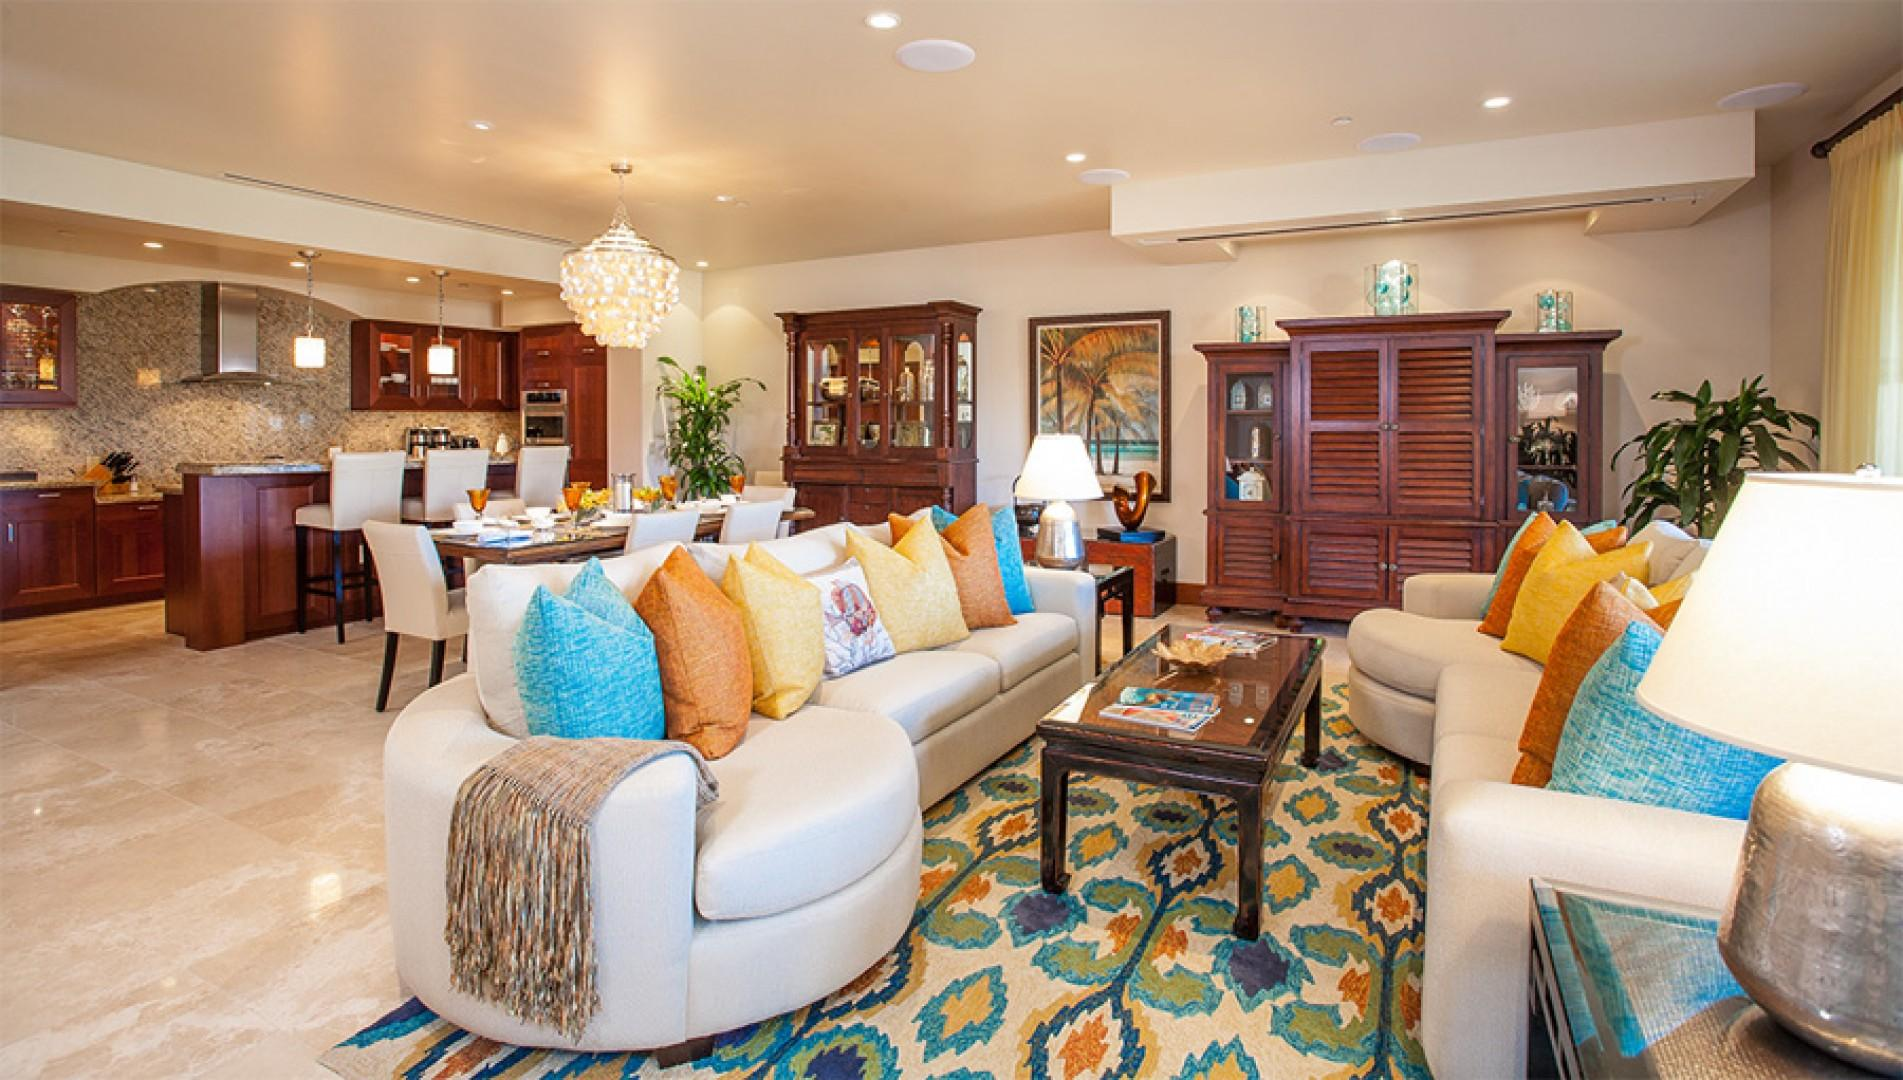 Castaway Cove C201 - Spacious Ocean View Great Room with Entertainment Center and Alfresco Terrace